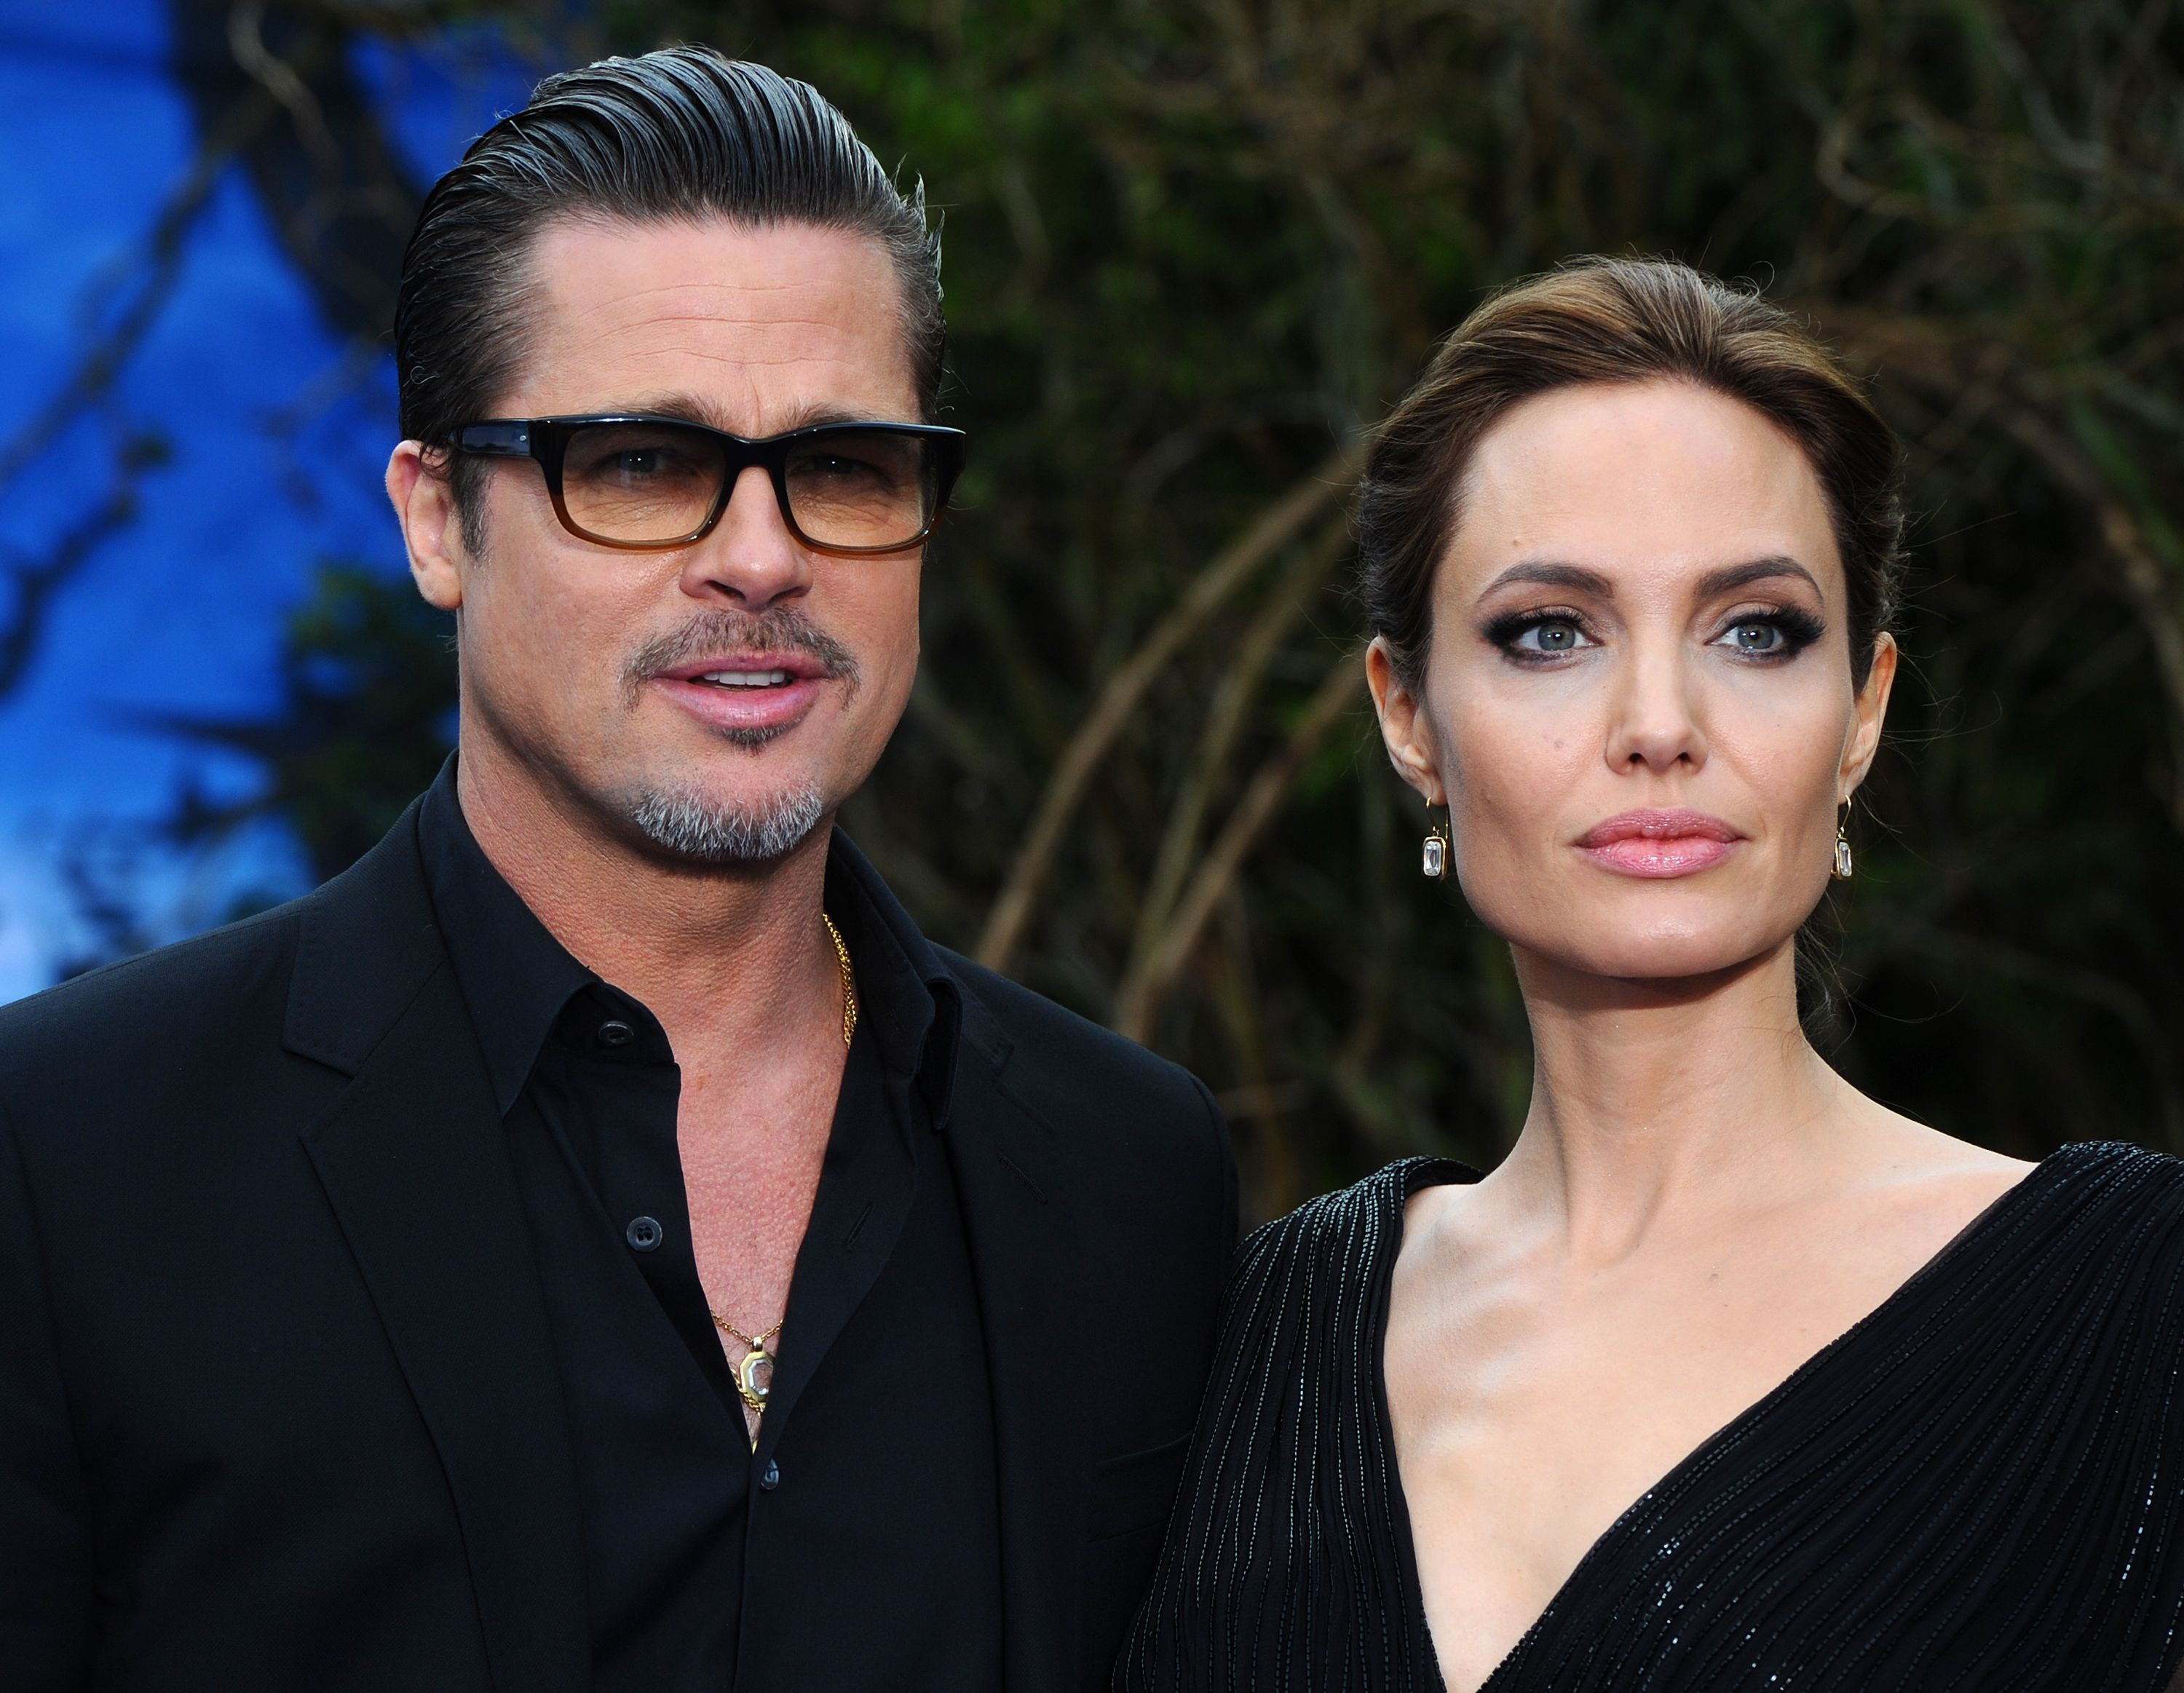 Brad Pitt feels strained relationship with son Maddox is a 'tremendous loss'